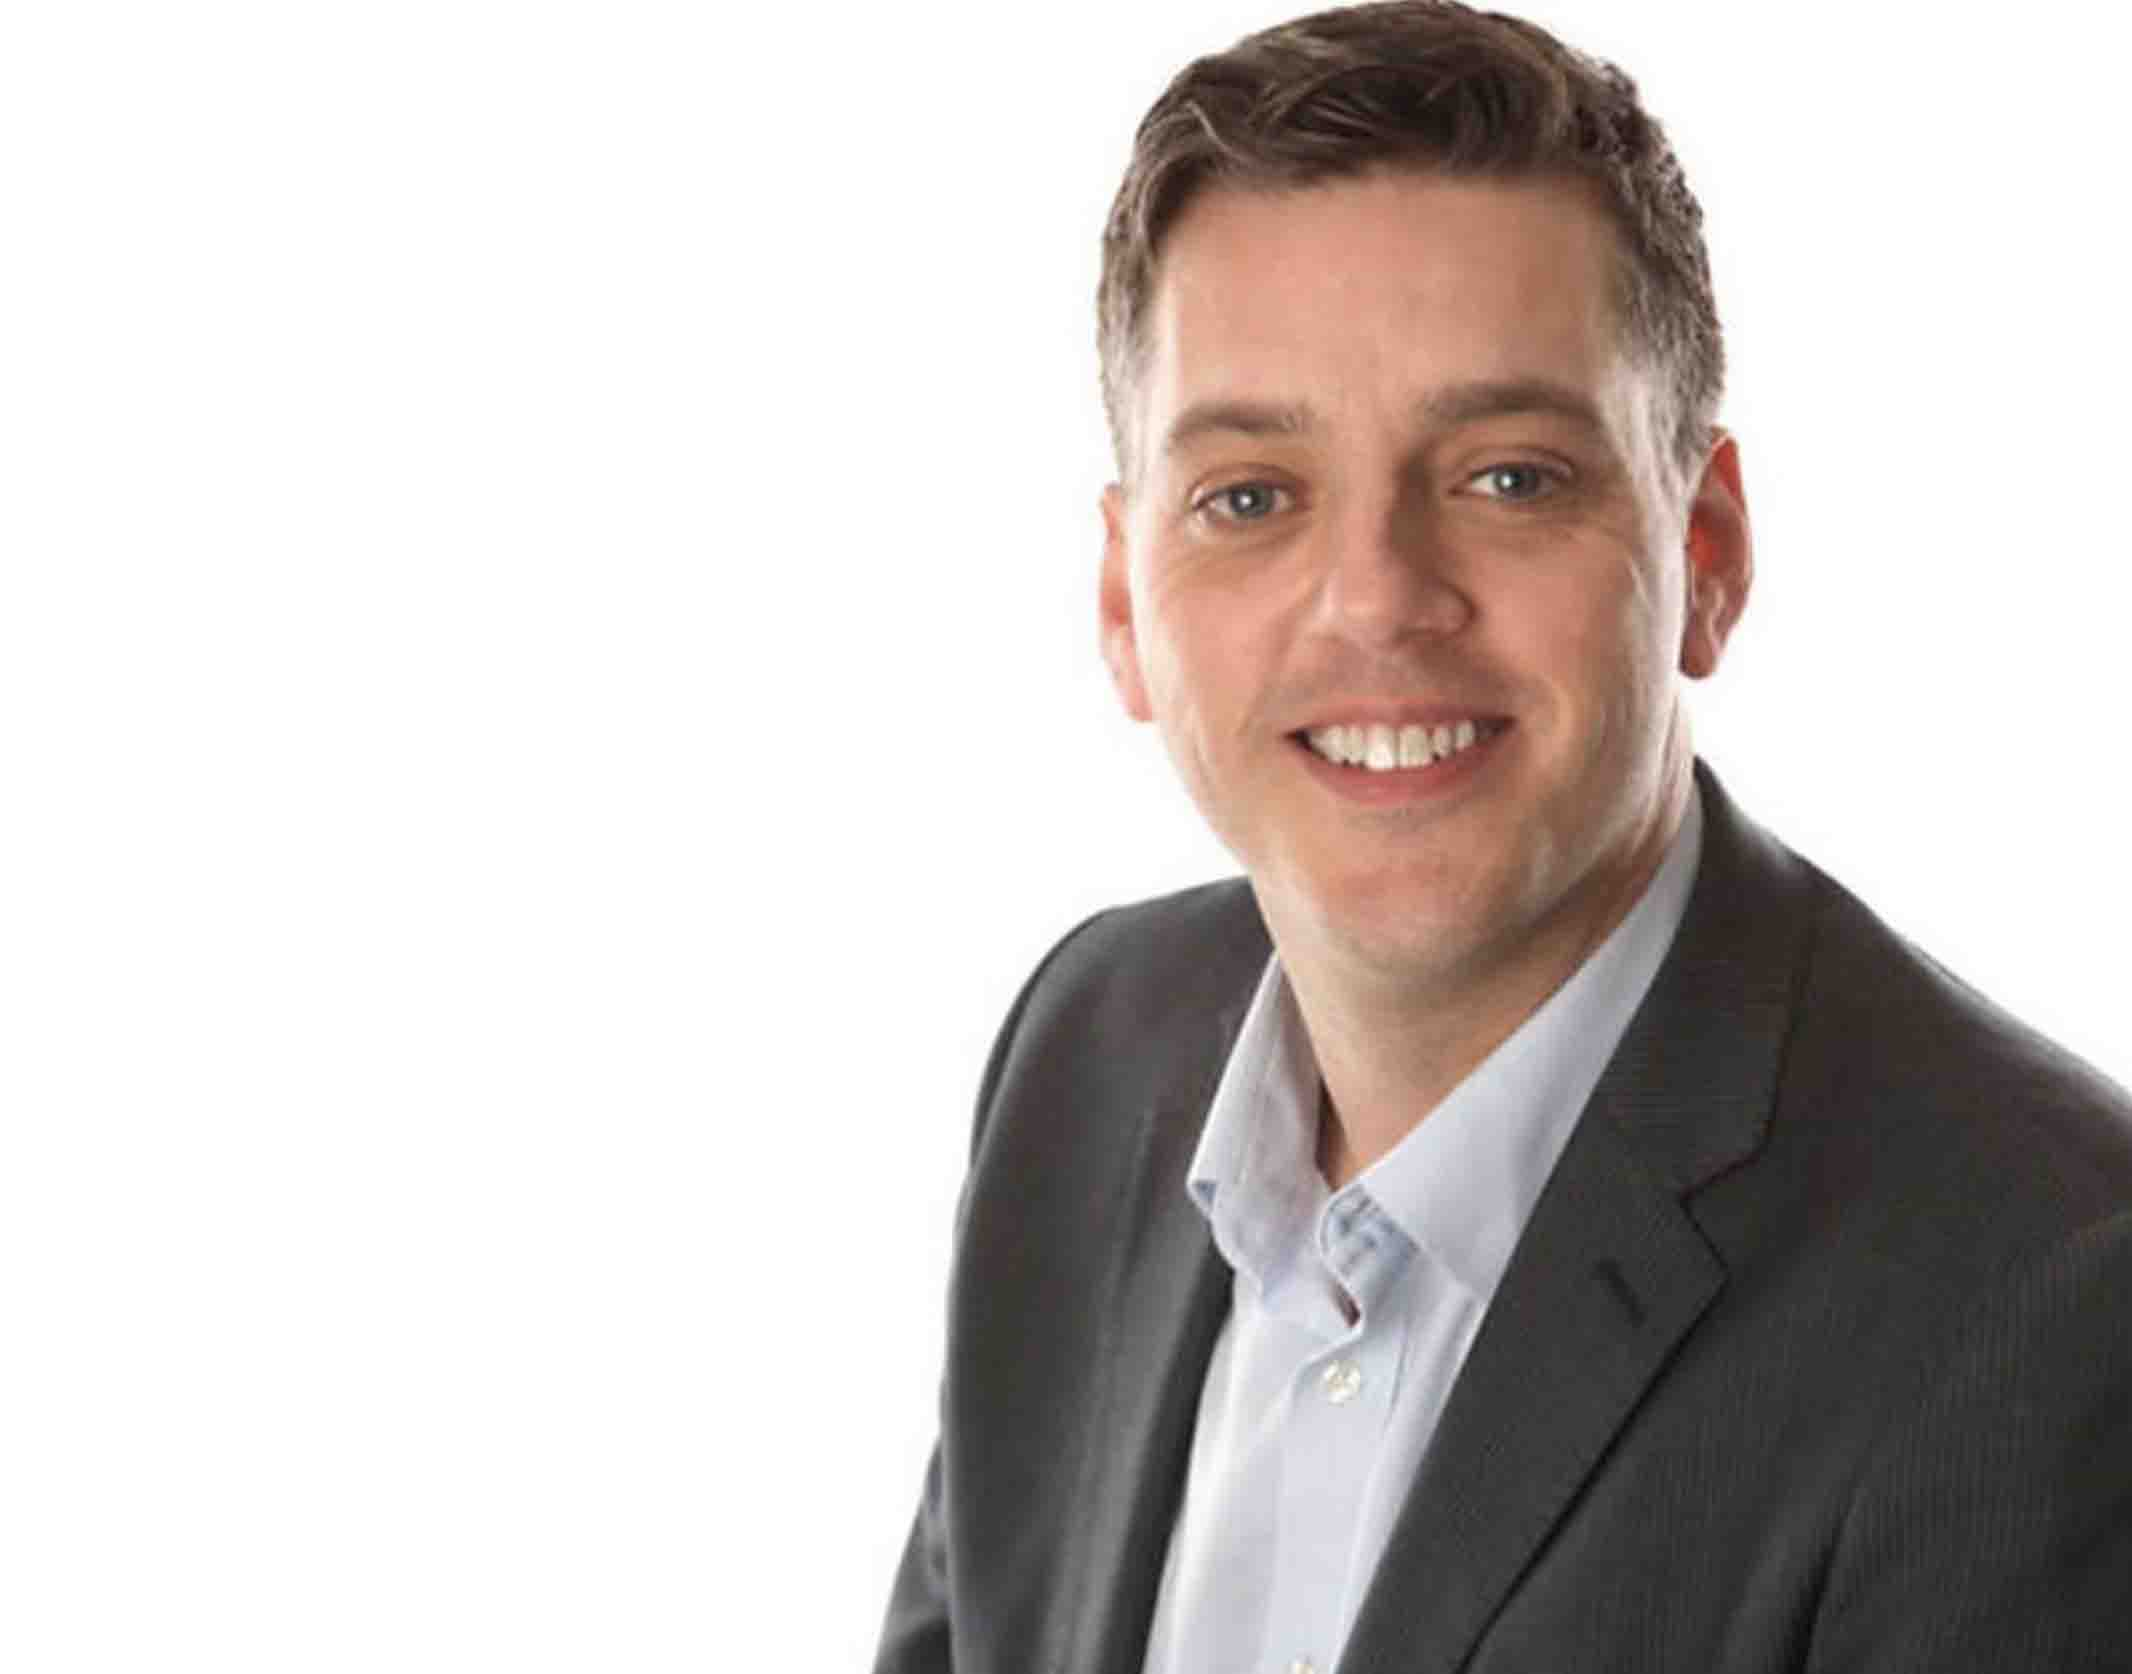 Iain lee radio presenter on celebrity